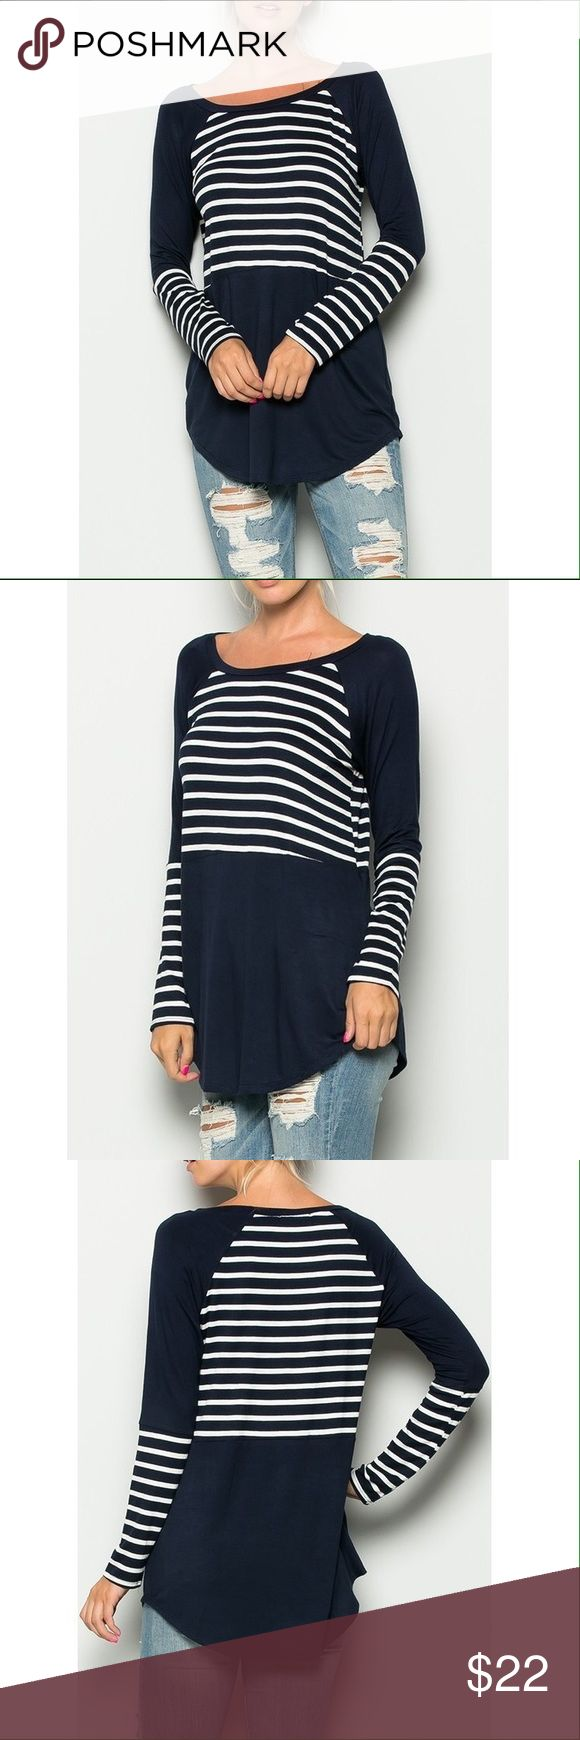 Navy Long Sleeve Top with Stripes 95% Rayon 5% Spandex. Also available in Burgundy and Olive colors. No trades. Tops